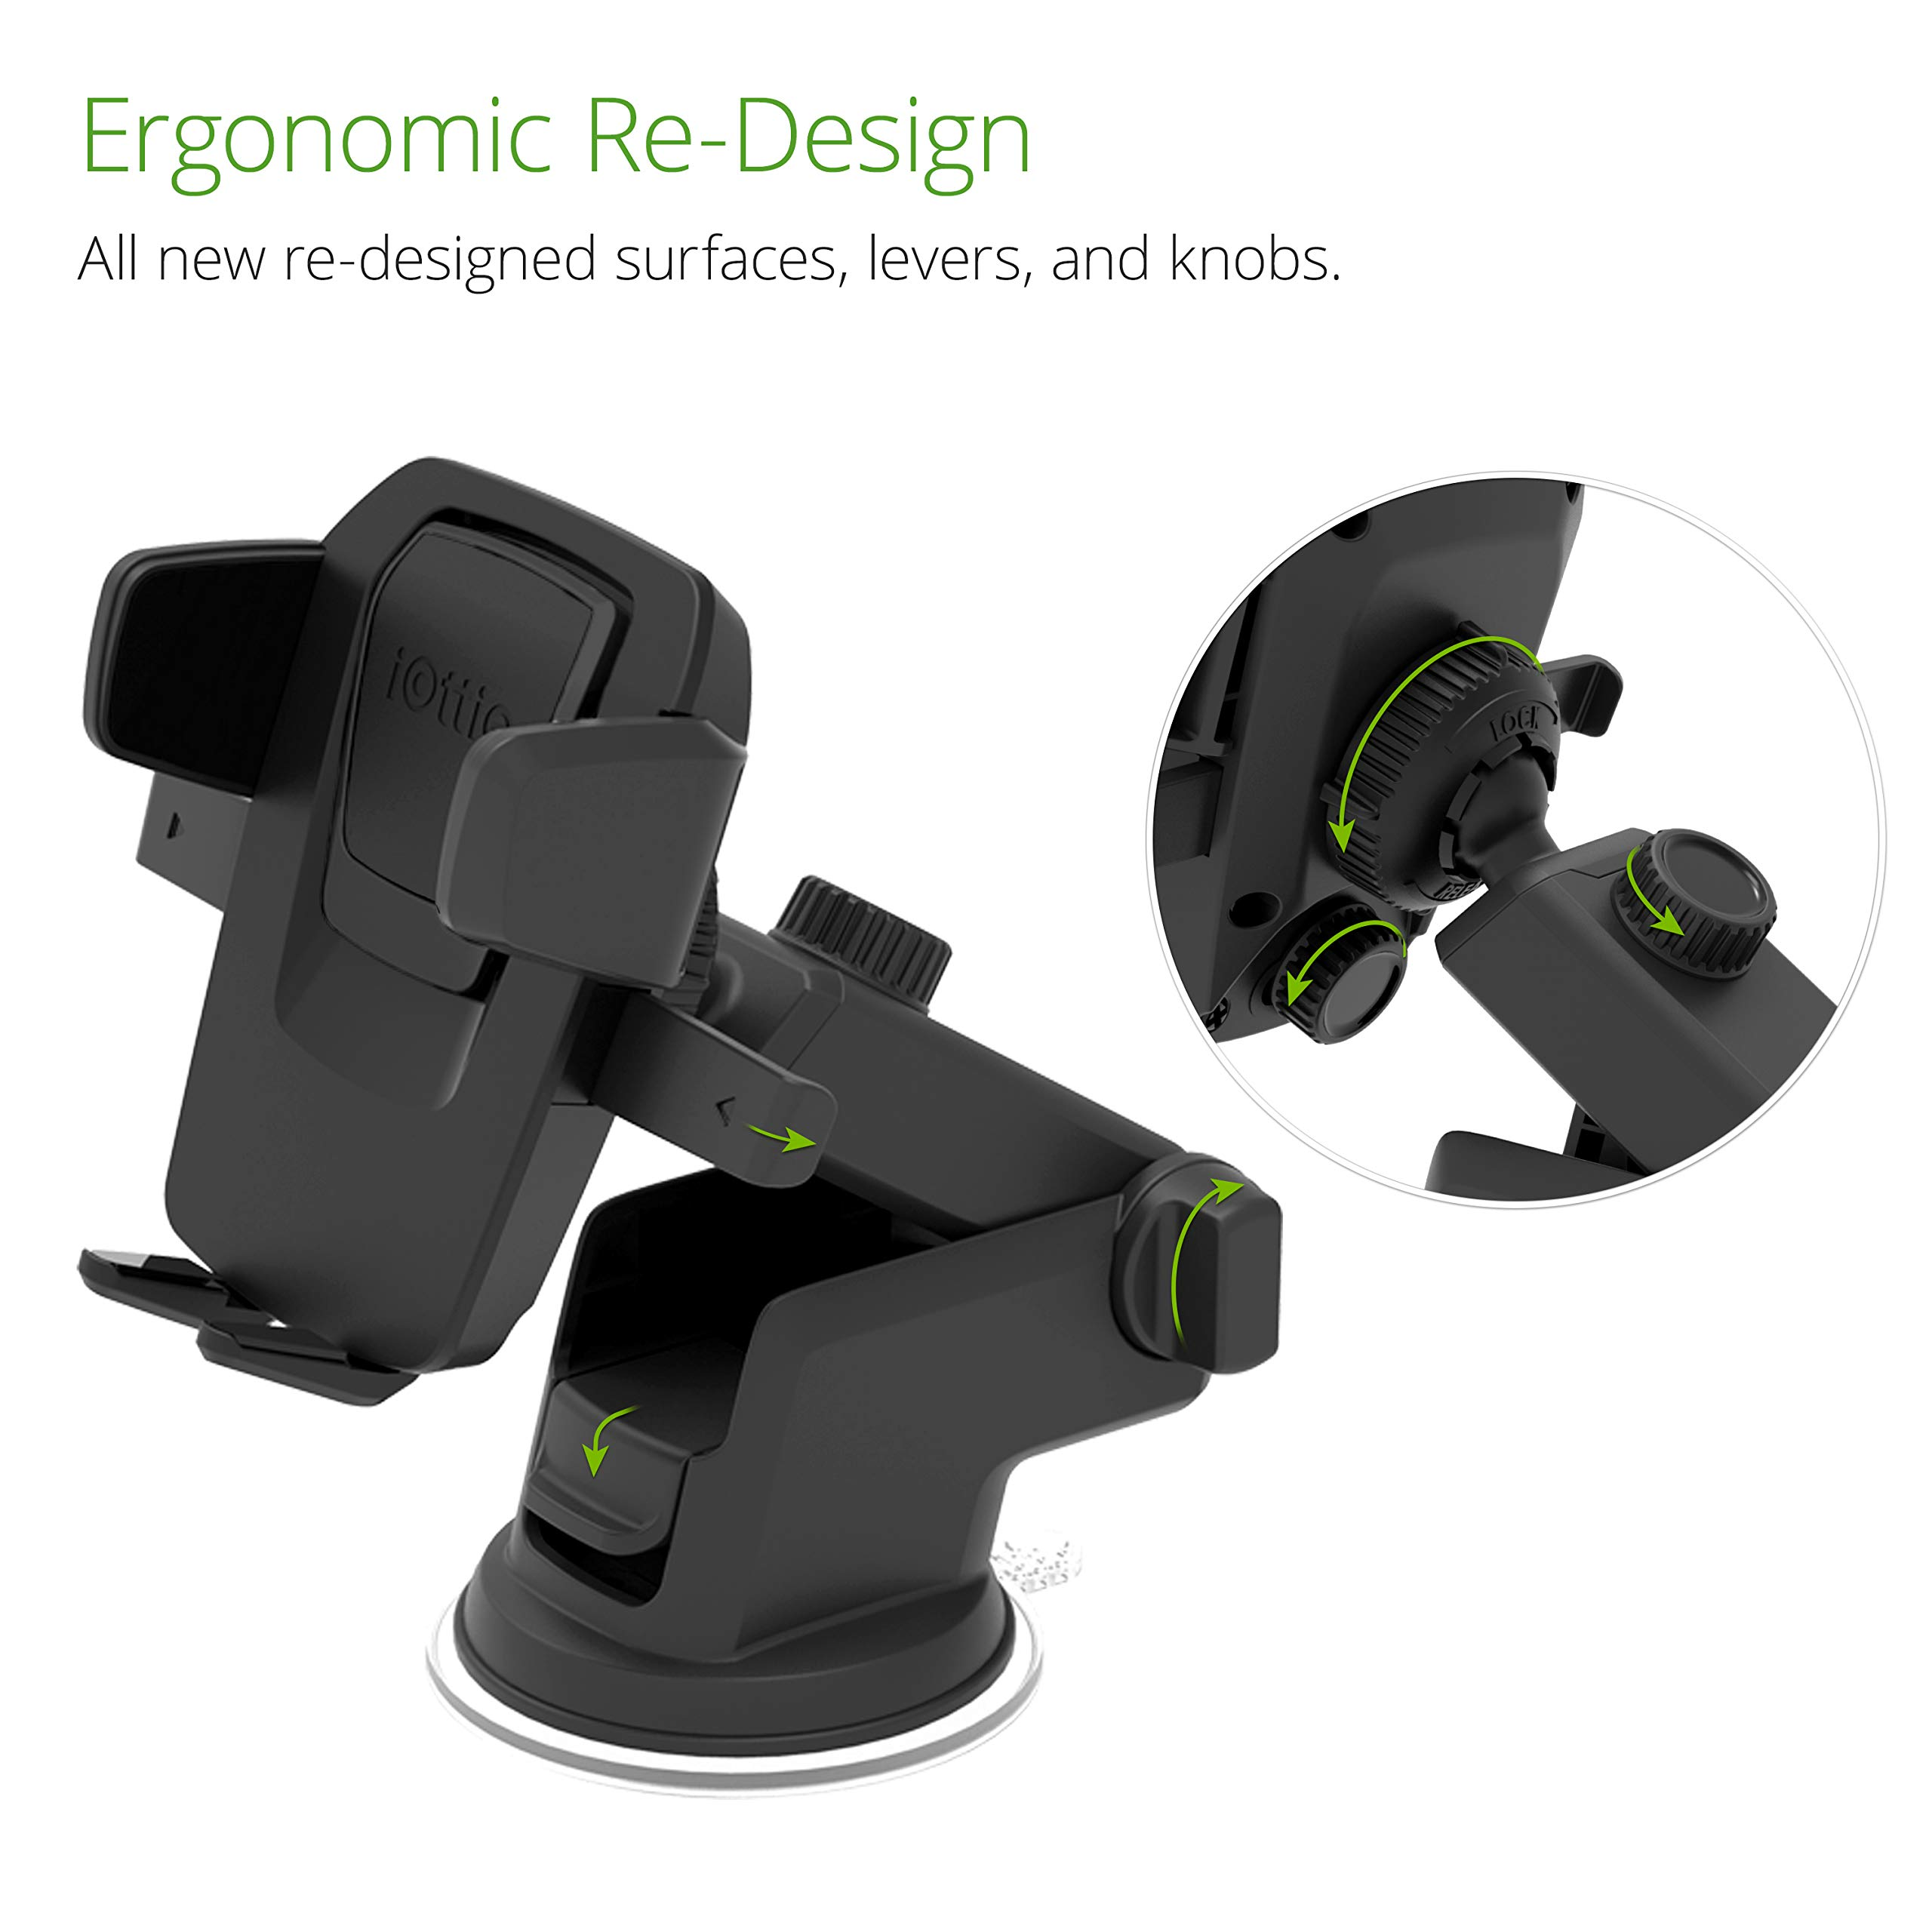 Emasun Car Phone Mount Universal Smartphone Car Air Vent Mount Holder Cradle Compatible with Phone X 6//7//8Plus SE 4//5//6s Samsung Galaxy S6 S5 S4 LG Nexus Sony Nokia and More Shenzhen Yimashun electronics co LTD 4351524783